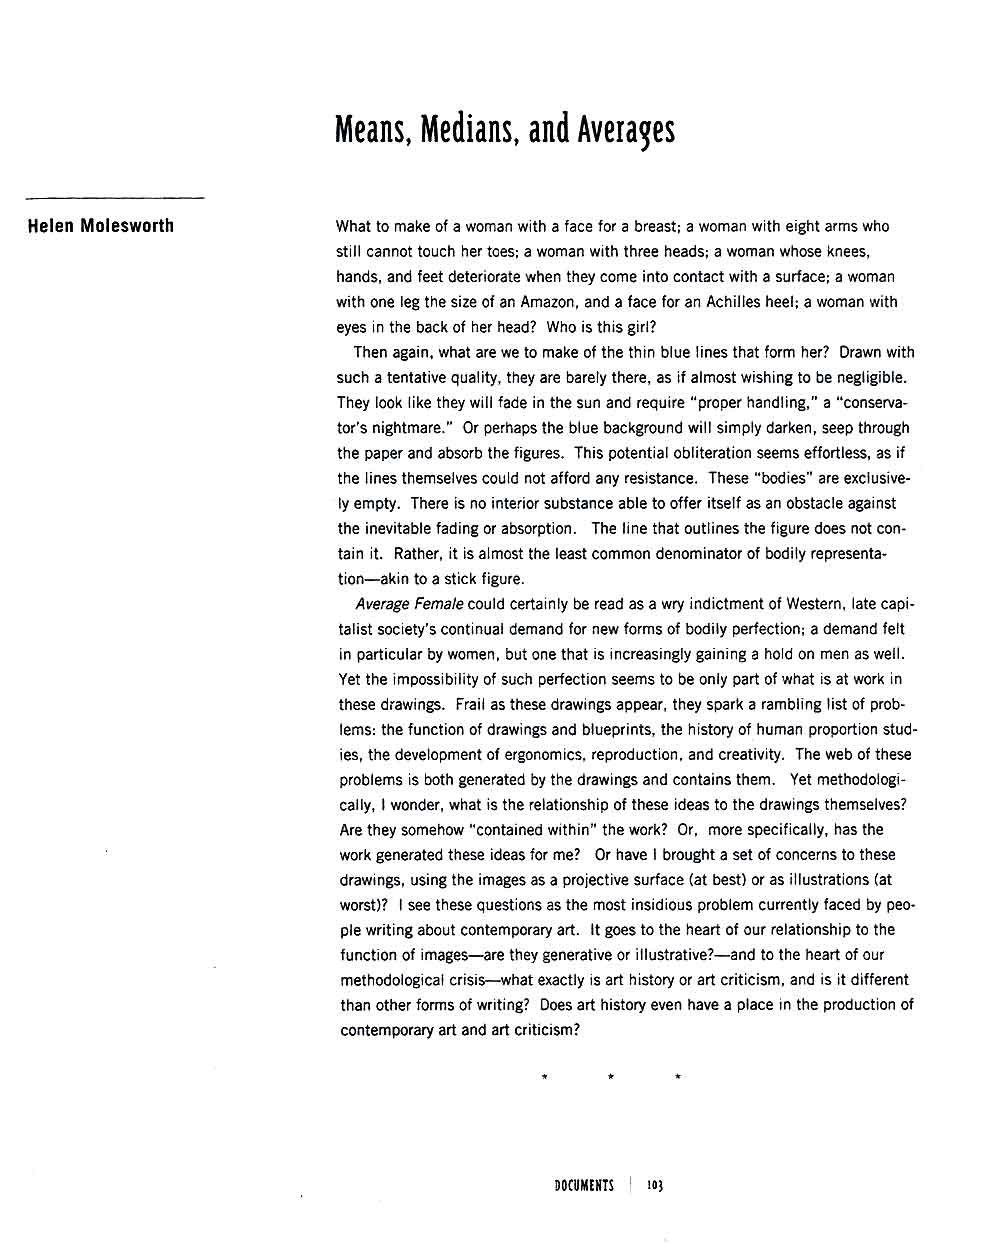 Means, Medians, and Averages, article, pg 1